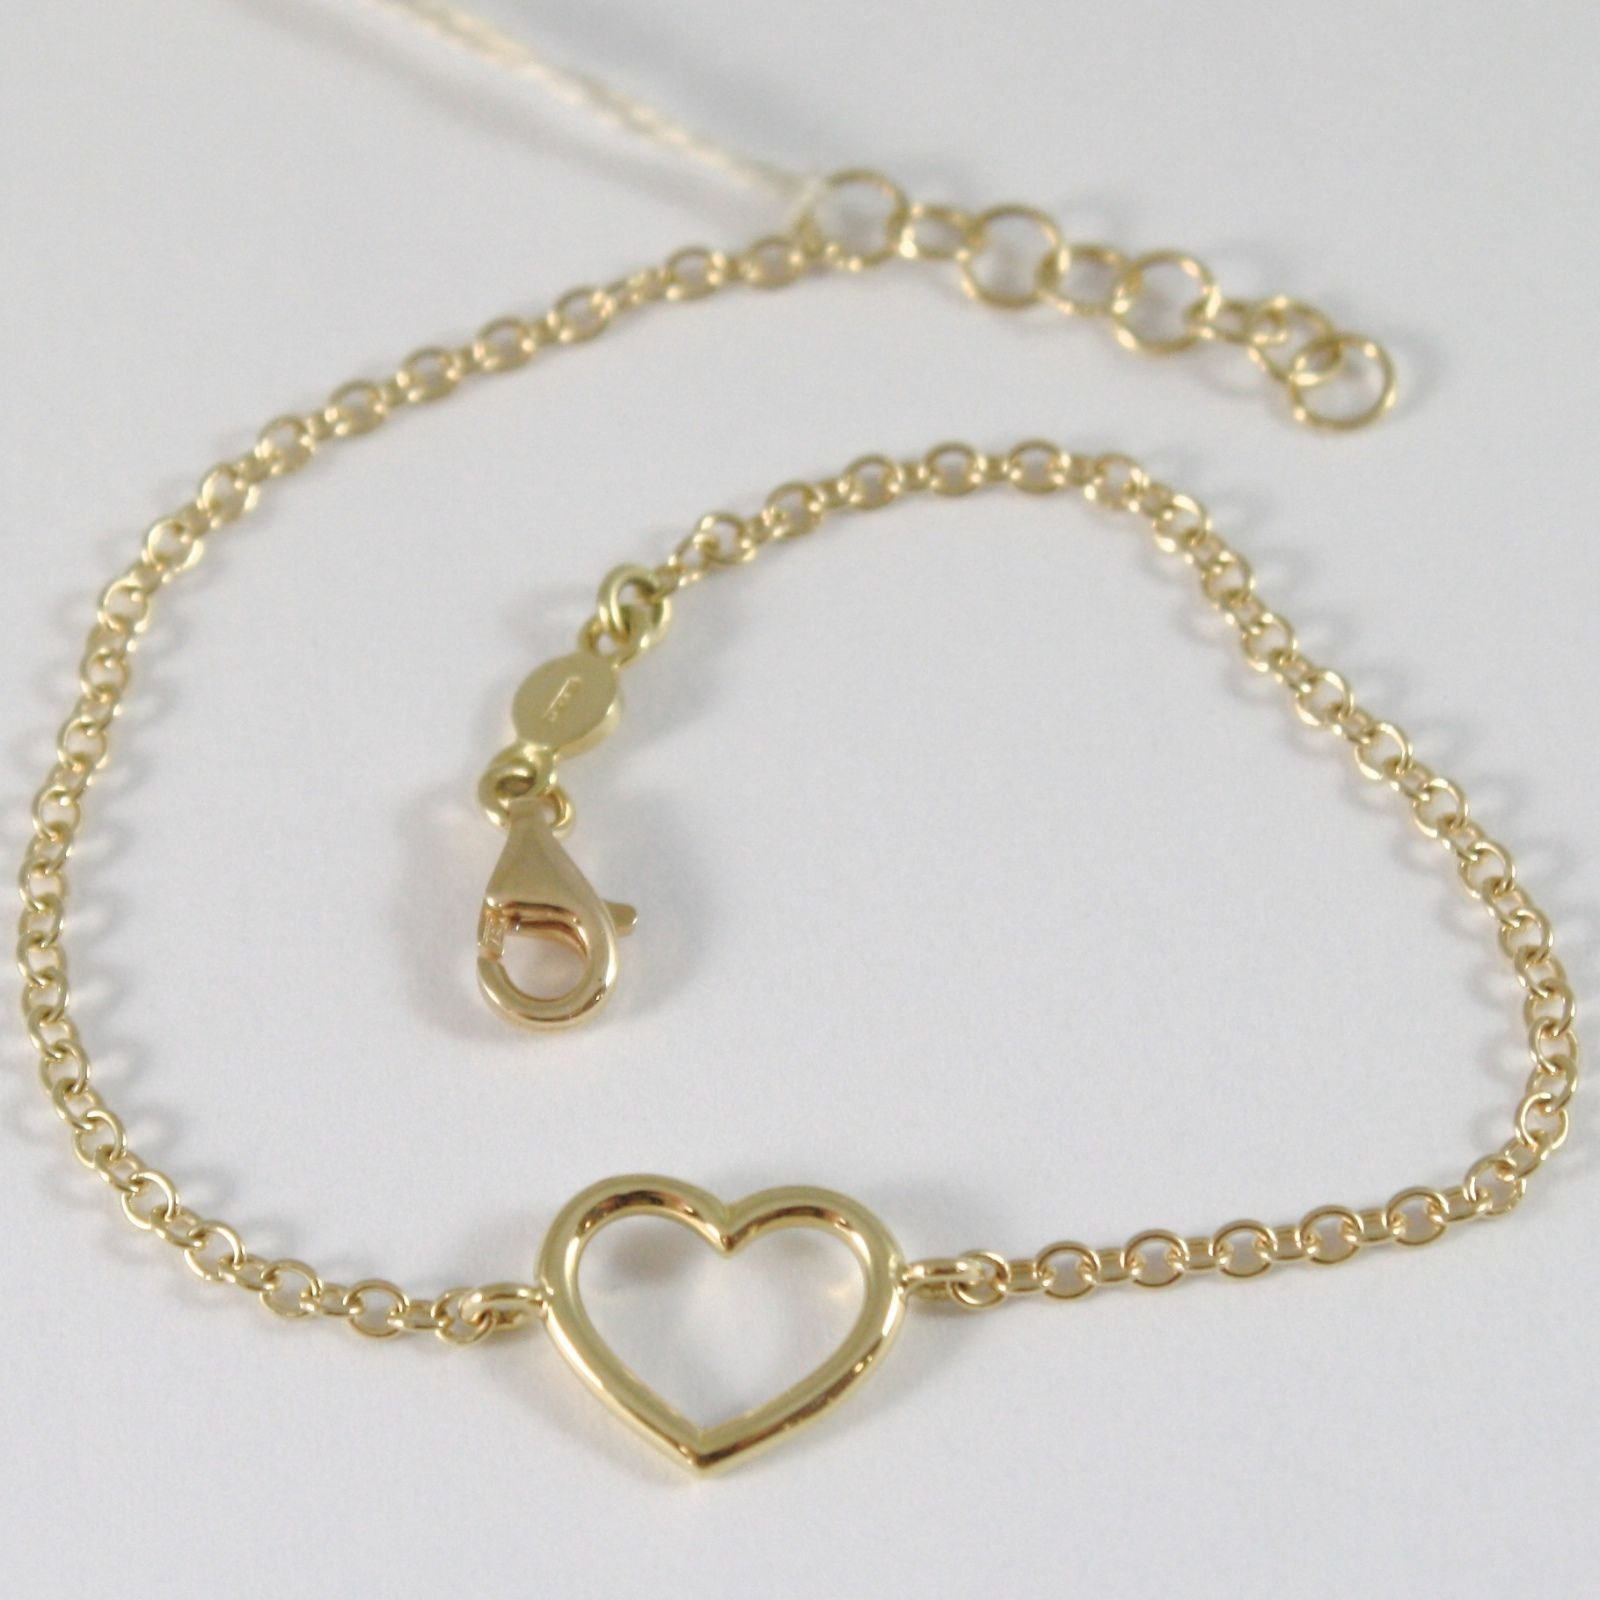 BRACELET YELLOW GOLD 750 18K WITH HEART TUBE, ROLO', 18 CM LENGTH